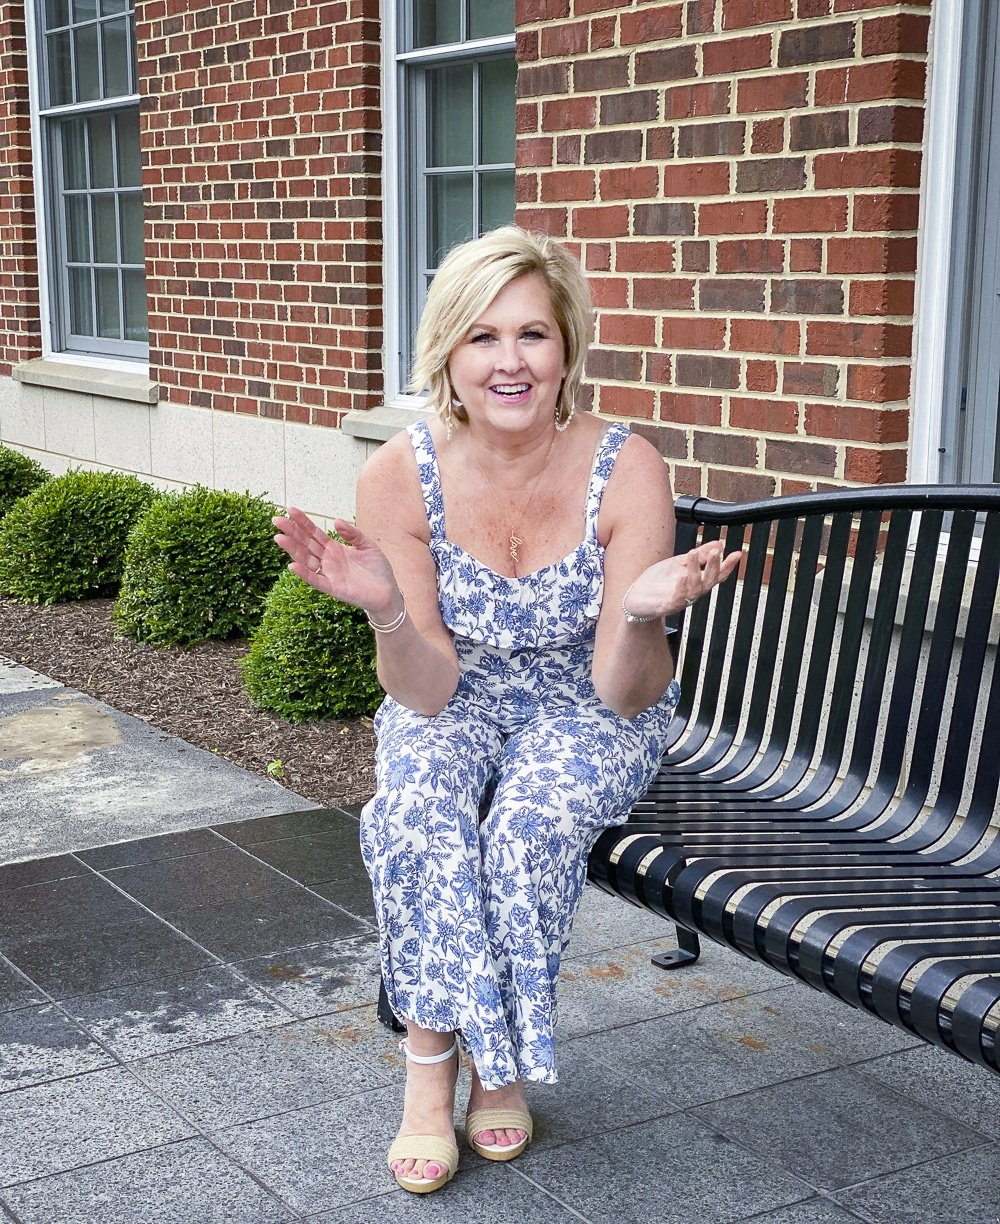 Fashion Blogger 50 Is Not Old is wearing a blue and white jumpsuit, and laughing while sitting on a bench